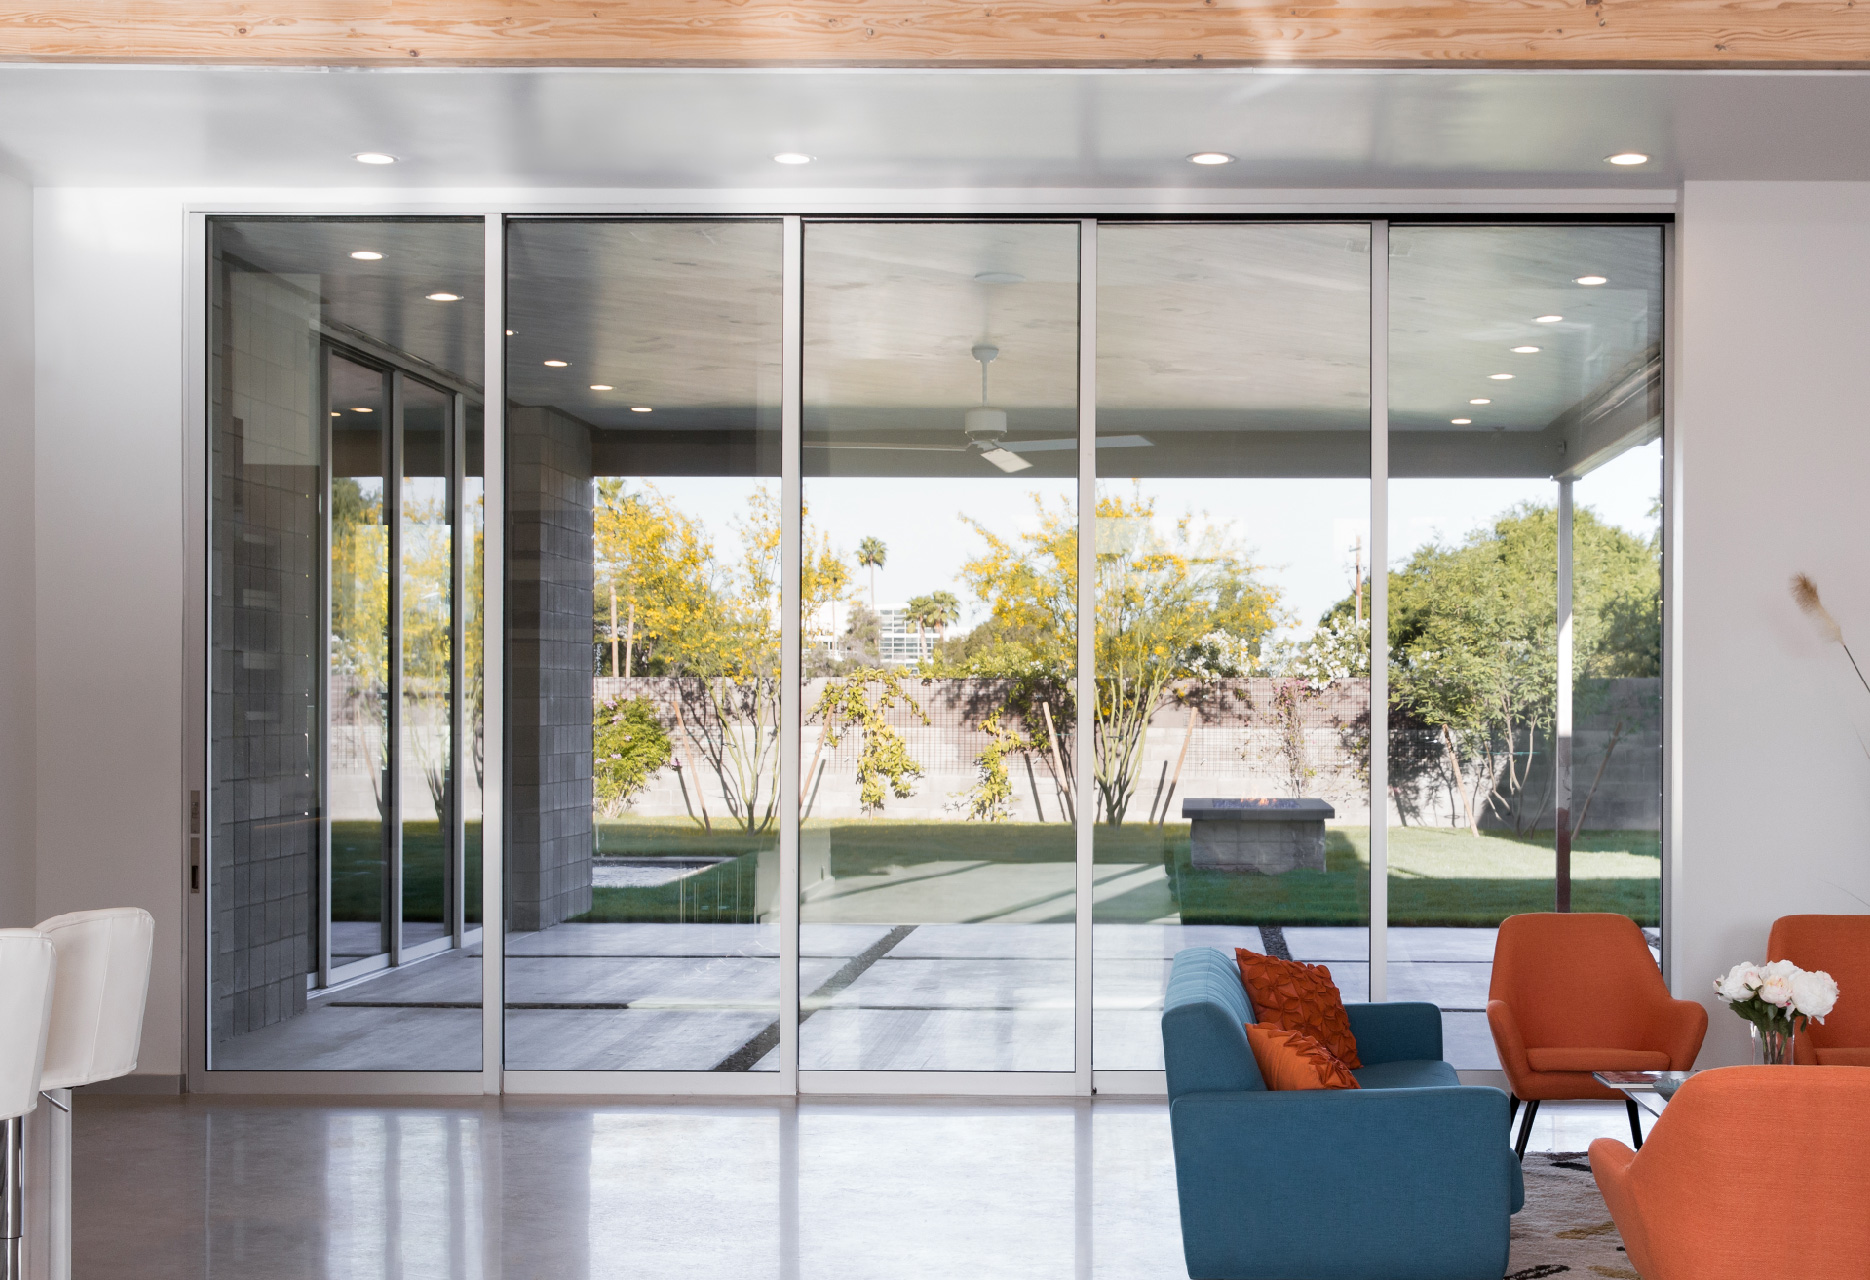 Western Window Systems Introduces Low-E Oversize Multi-Slide Door and Windows